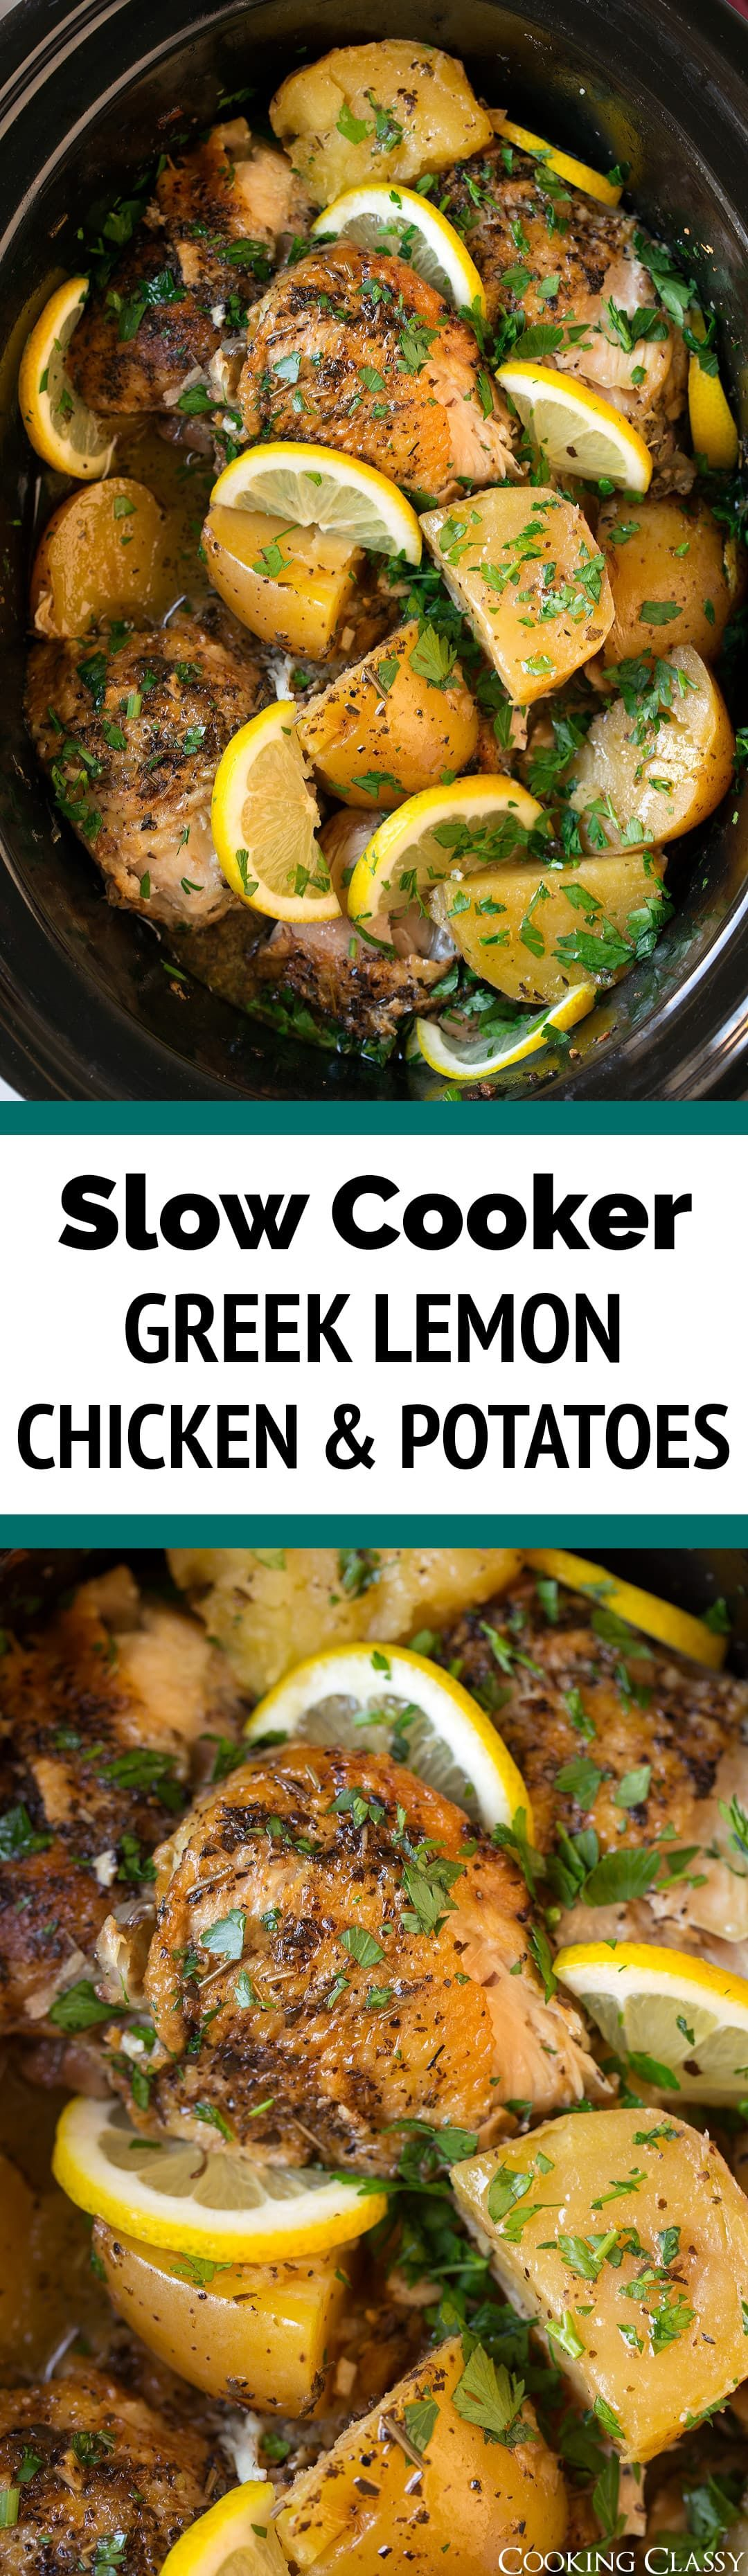 Slow Cooker Greek Lemon Chicken And Potatoes Such A